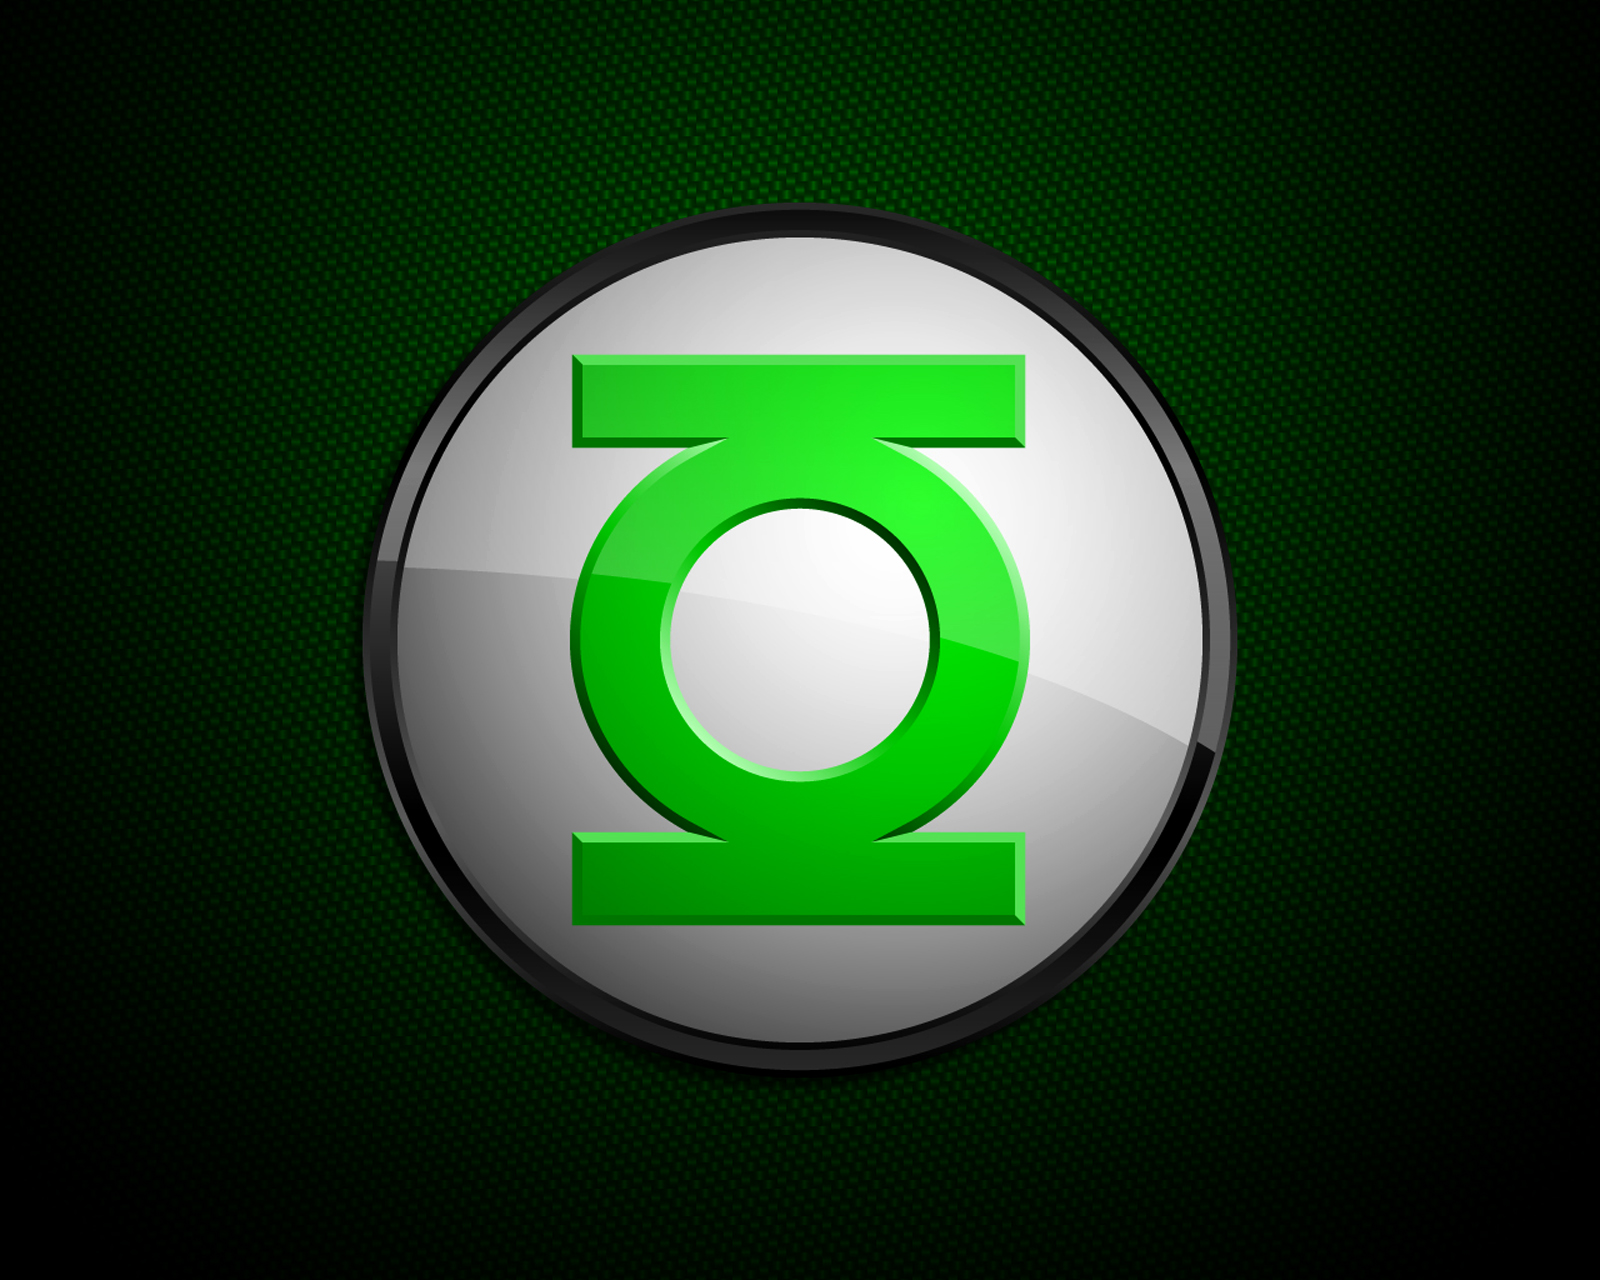 Green Lantern Comics Logo Minimal HD Wallpapers Download 1600x1280